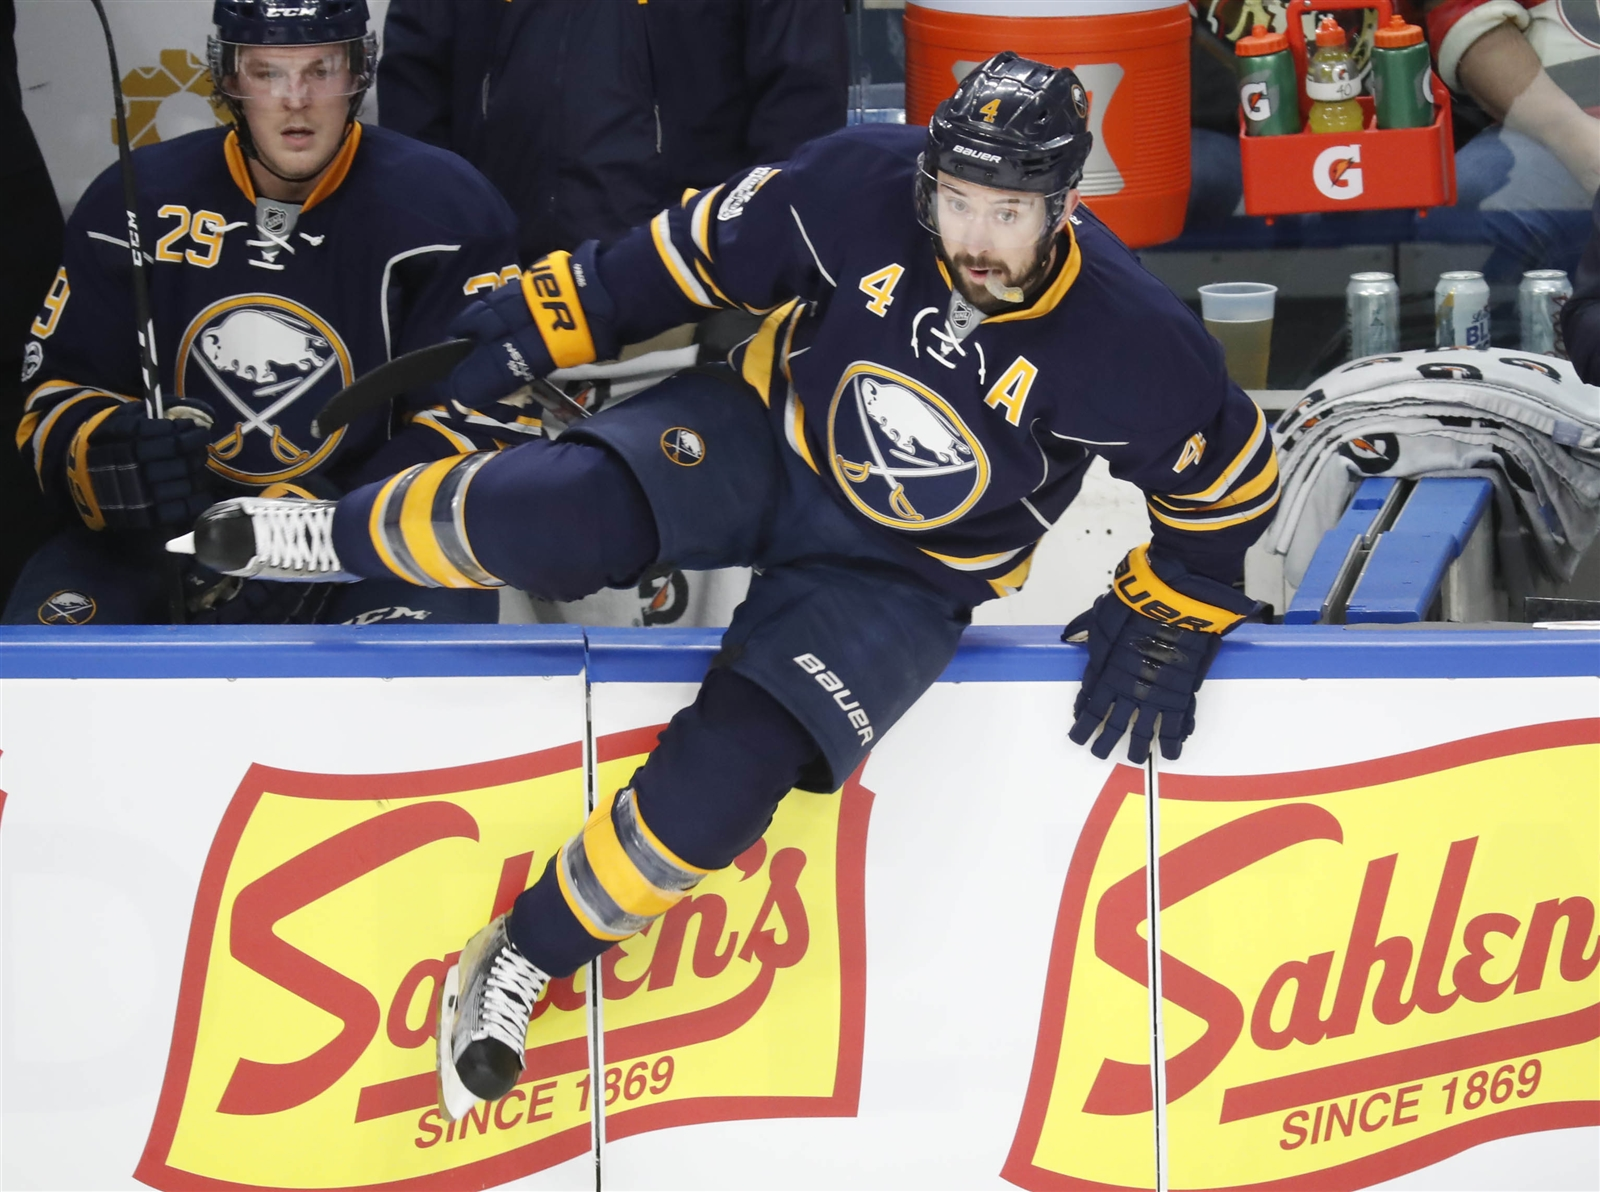 Sabres defensemen Josh Gorges (4) and Jake McCabe are under contract for next season. (Harry Scull Jr./Buffalo News)